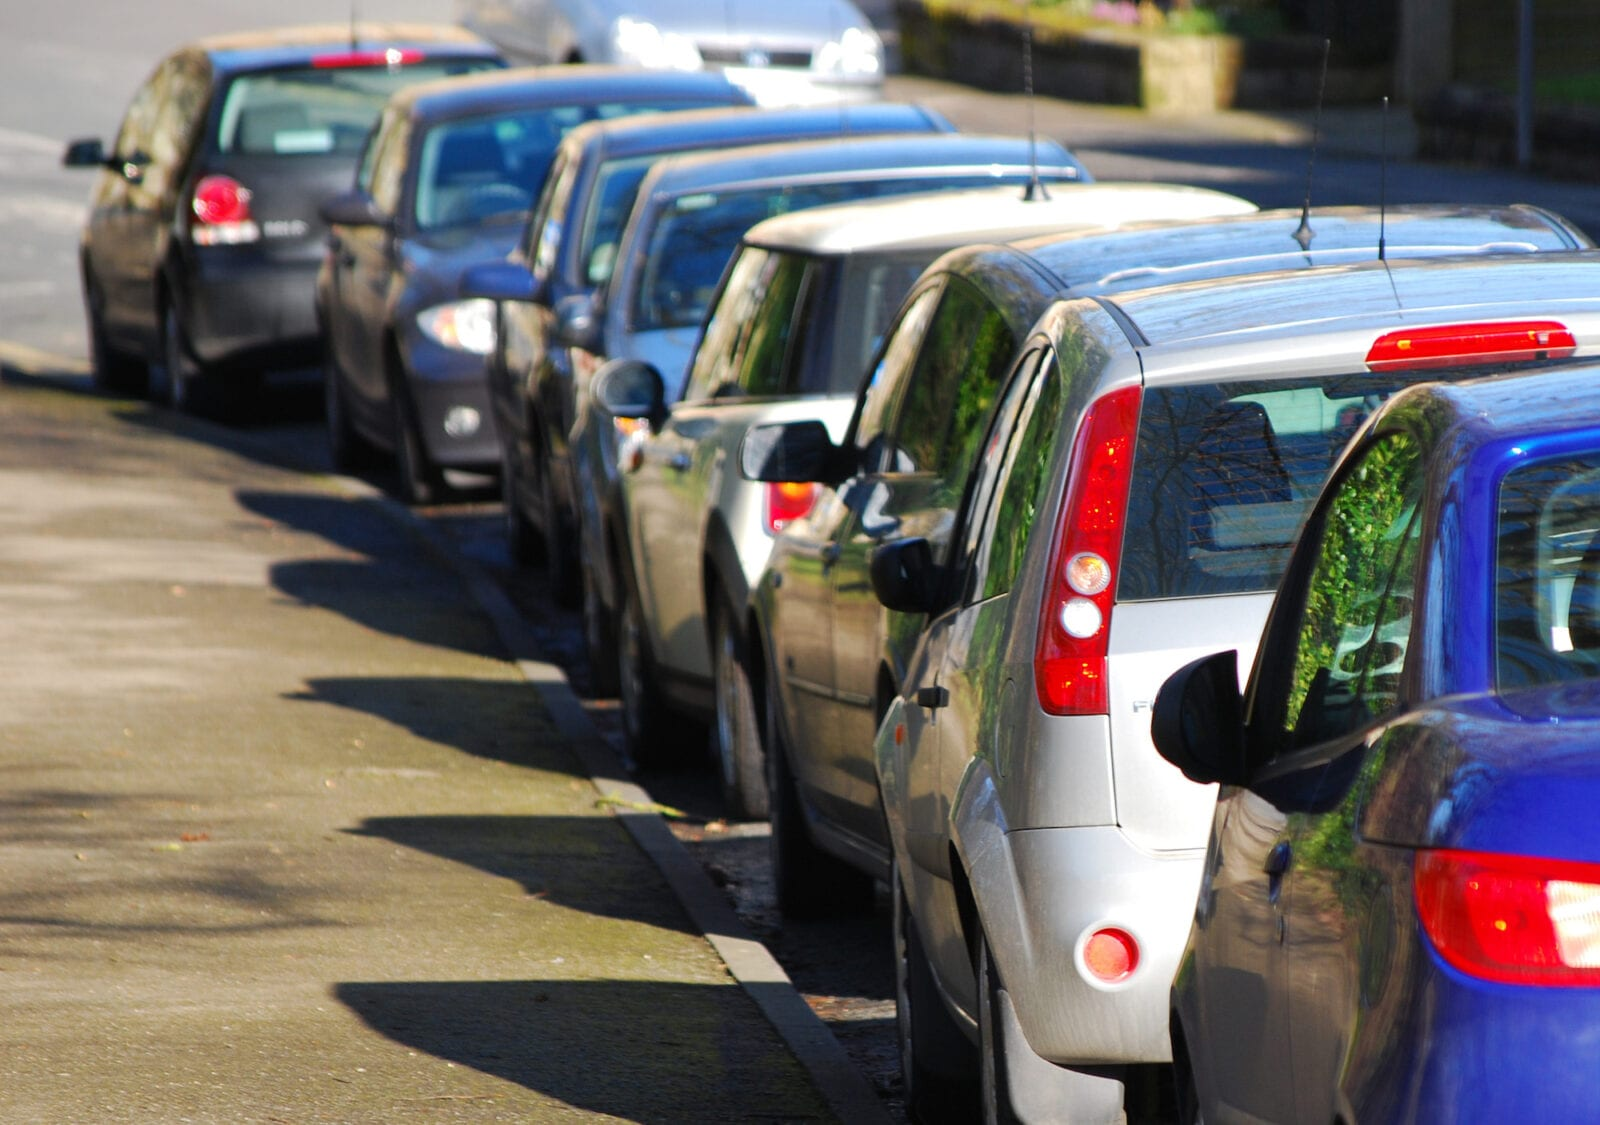 Government opens public consultation into the banning of pavement parking in England, The Manc